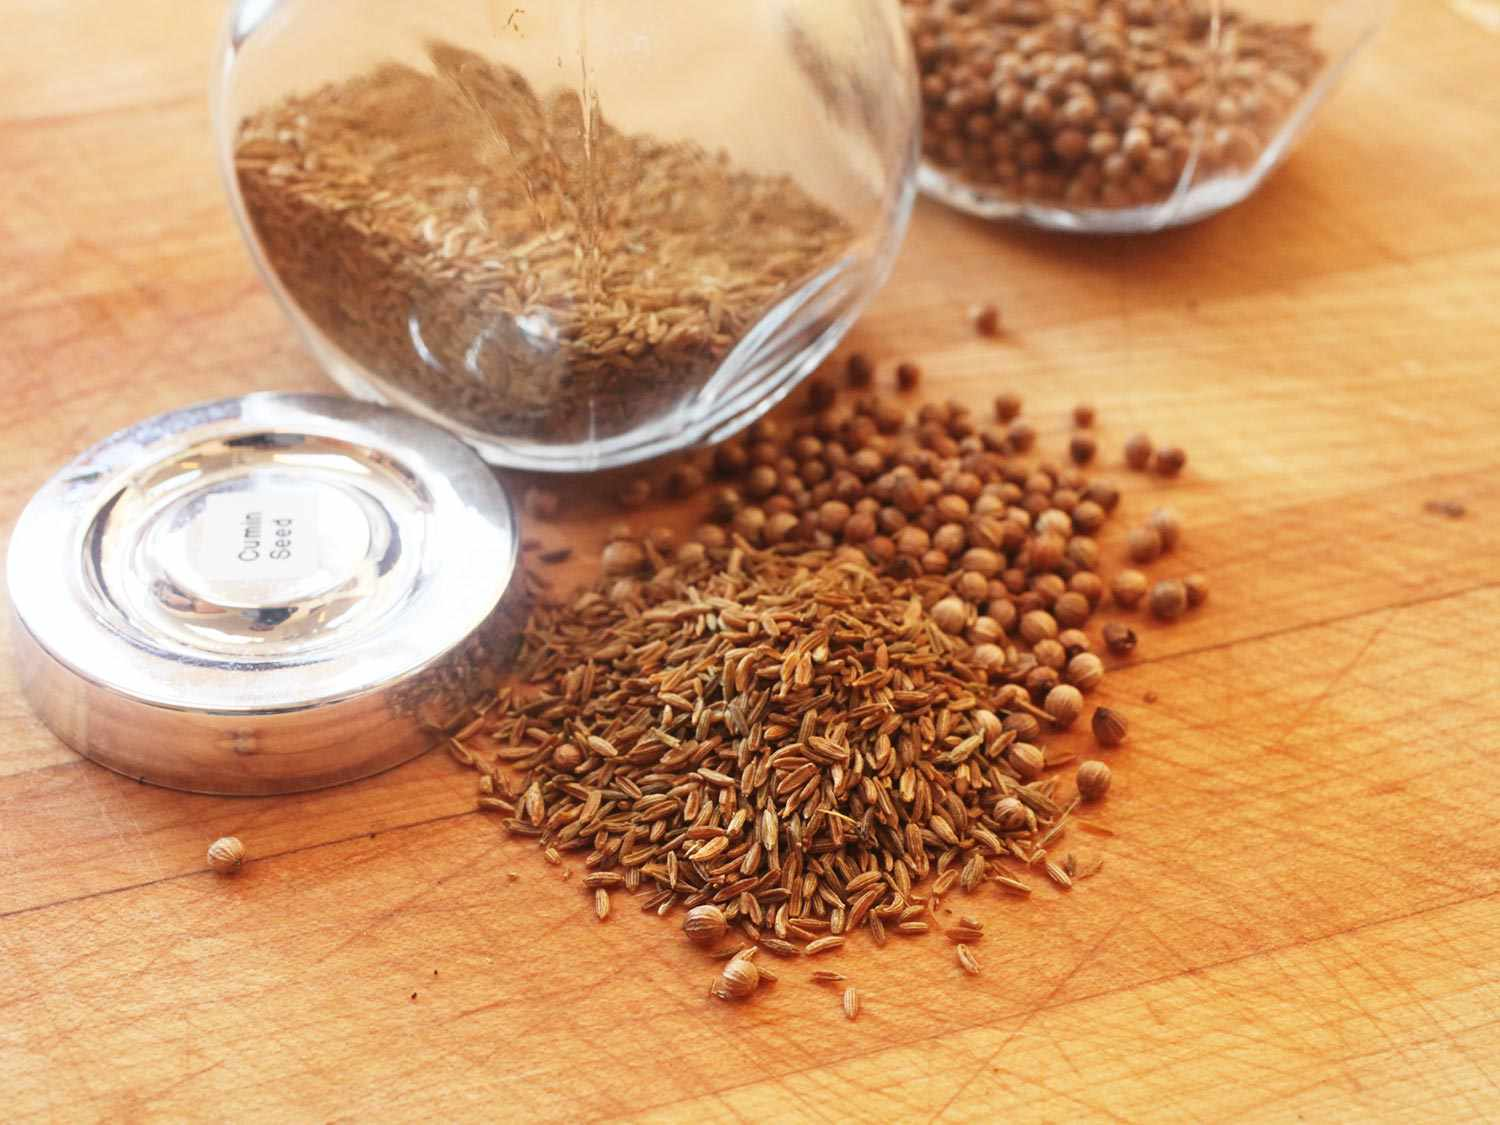 Whole cumin and coriander seeds on a wooden cutting board with their jars in the background.